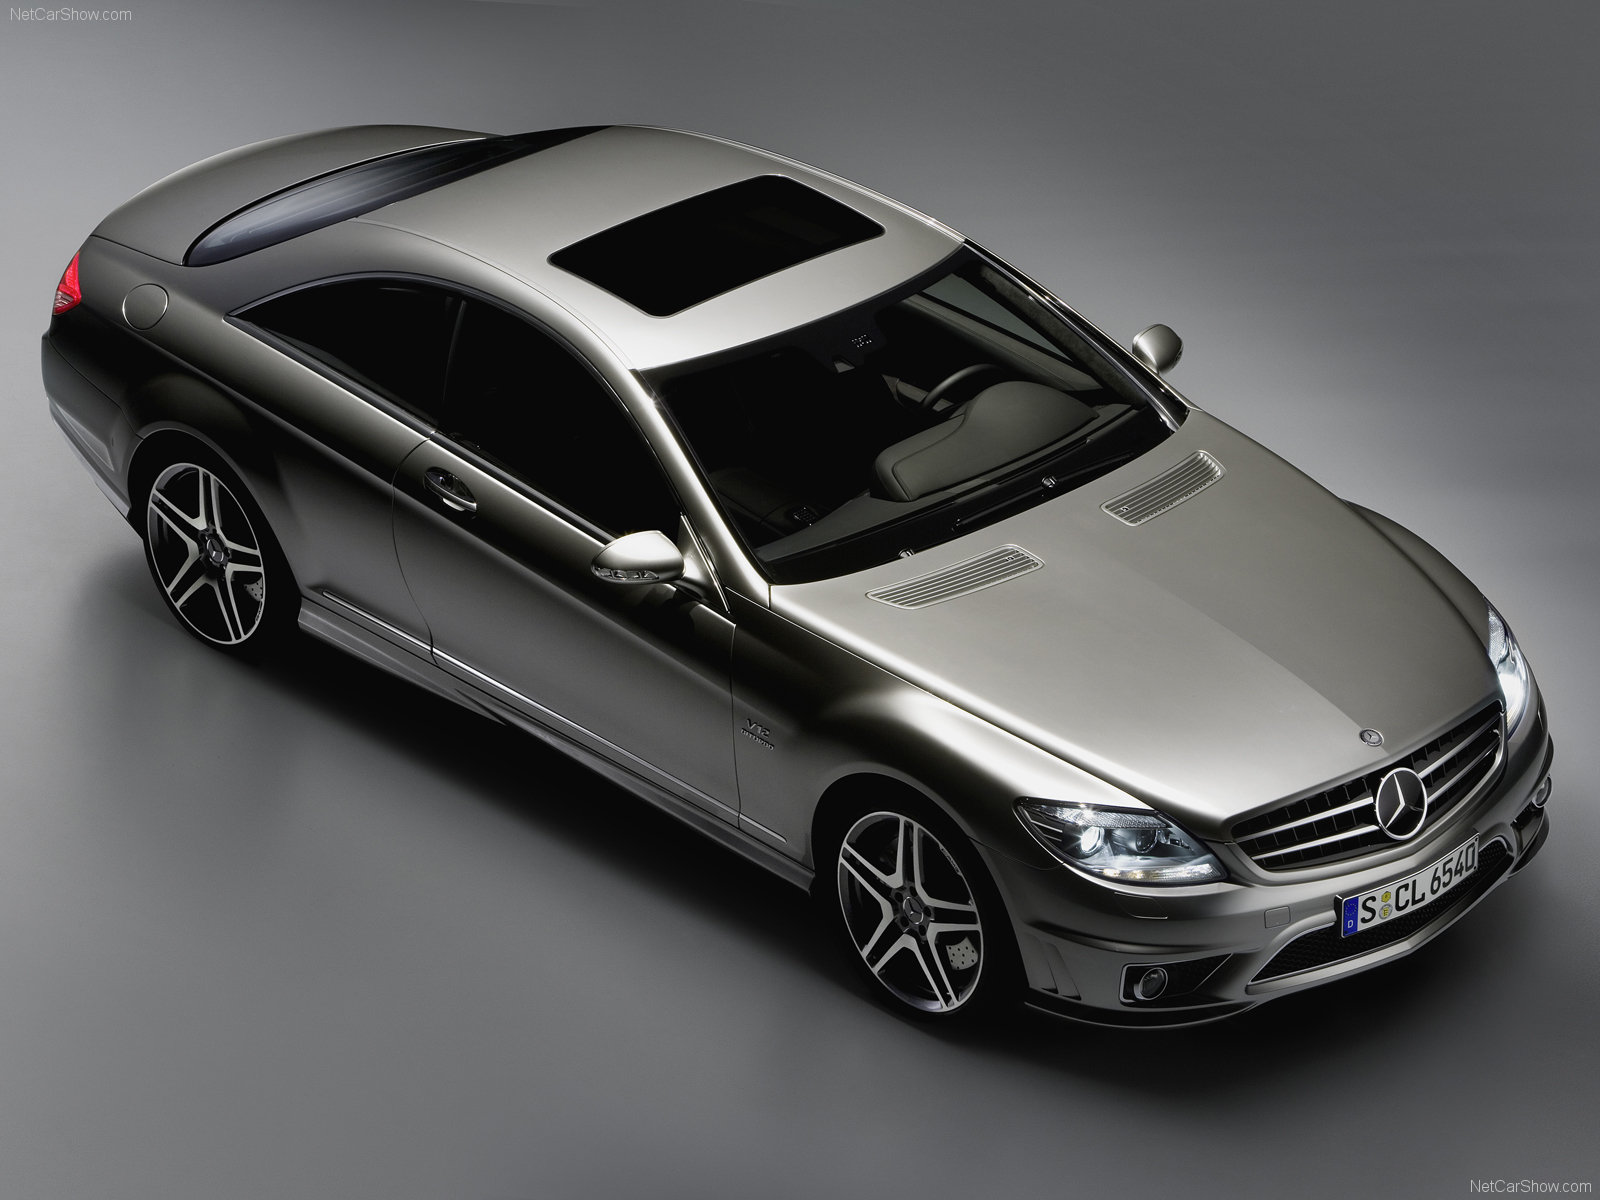 Mercedes Benz Cl Amg Picture 42657 Photo Gallery S Pic Link Https Mk35 Pic42657